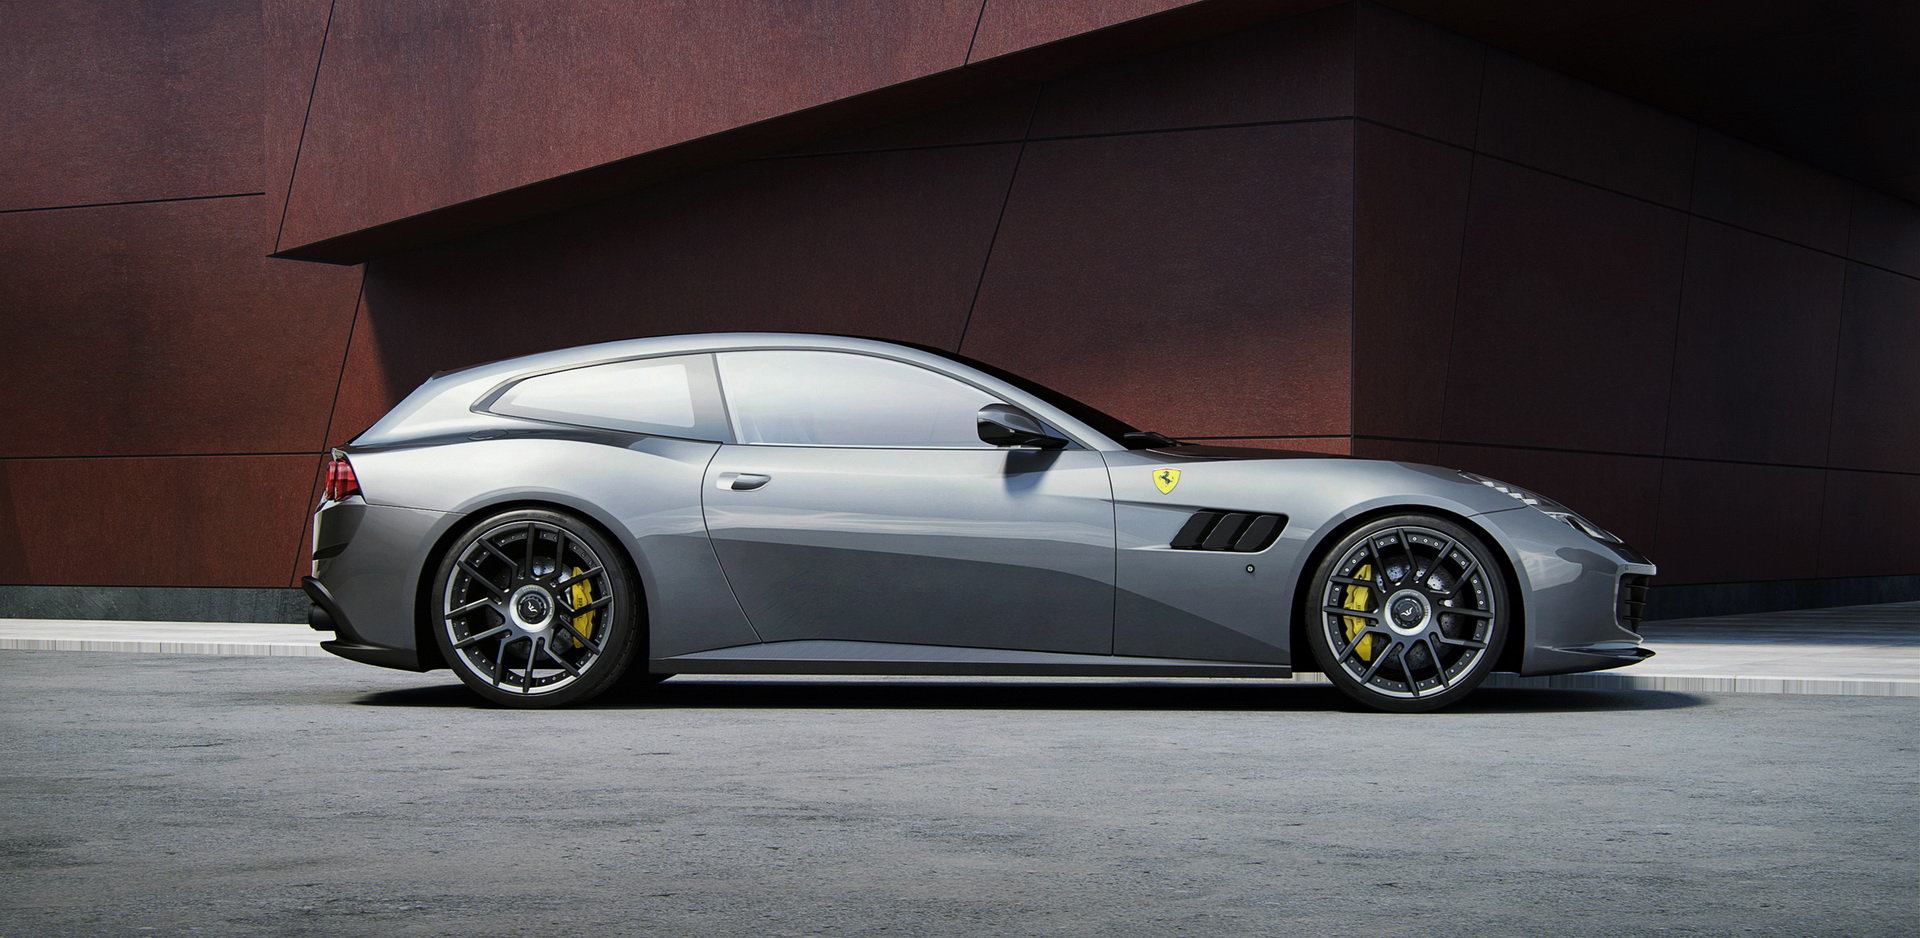 Wheelsandmore Stage 2 Ferrari Gtc4lusso T Is Not For The Faint Of Heart Autoevolution